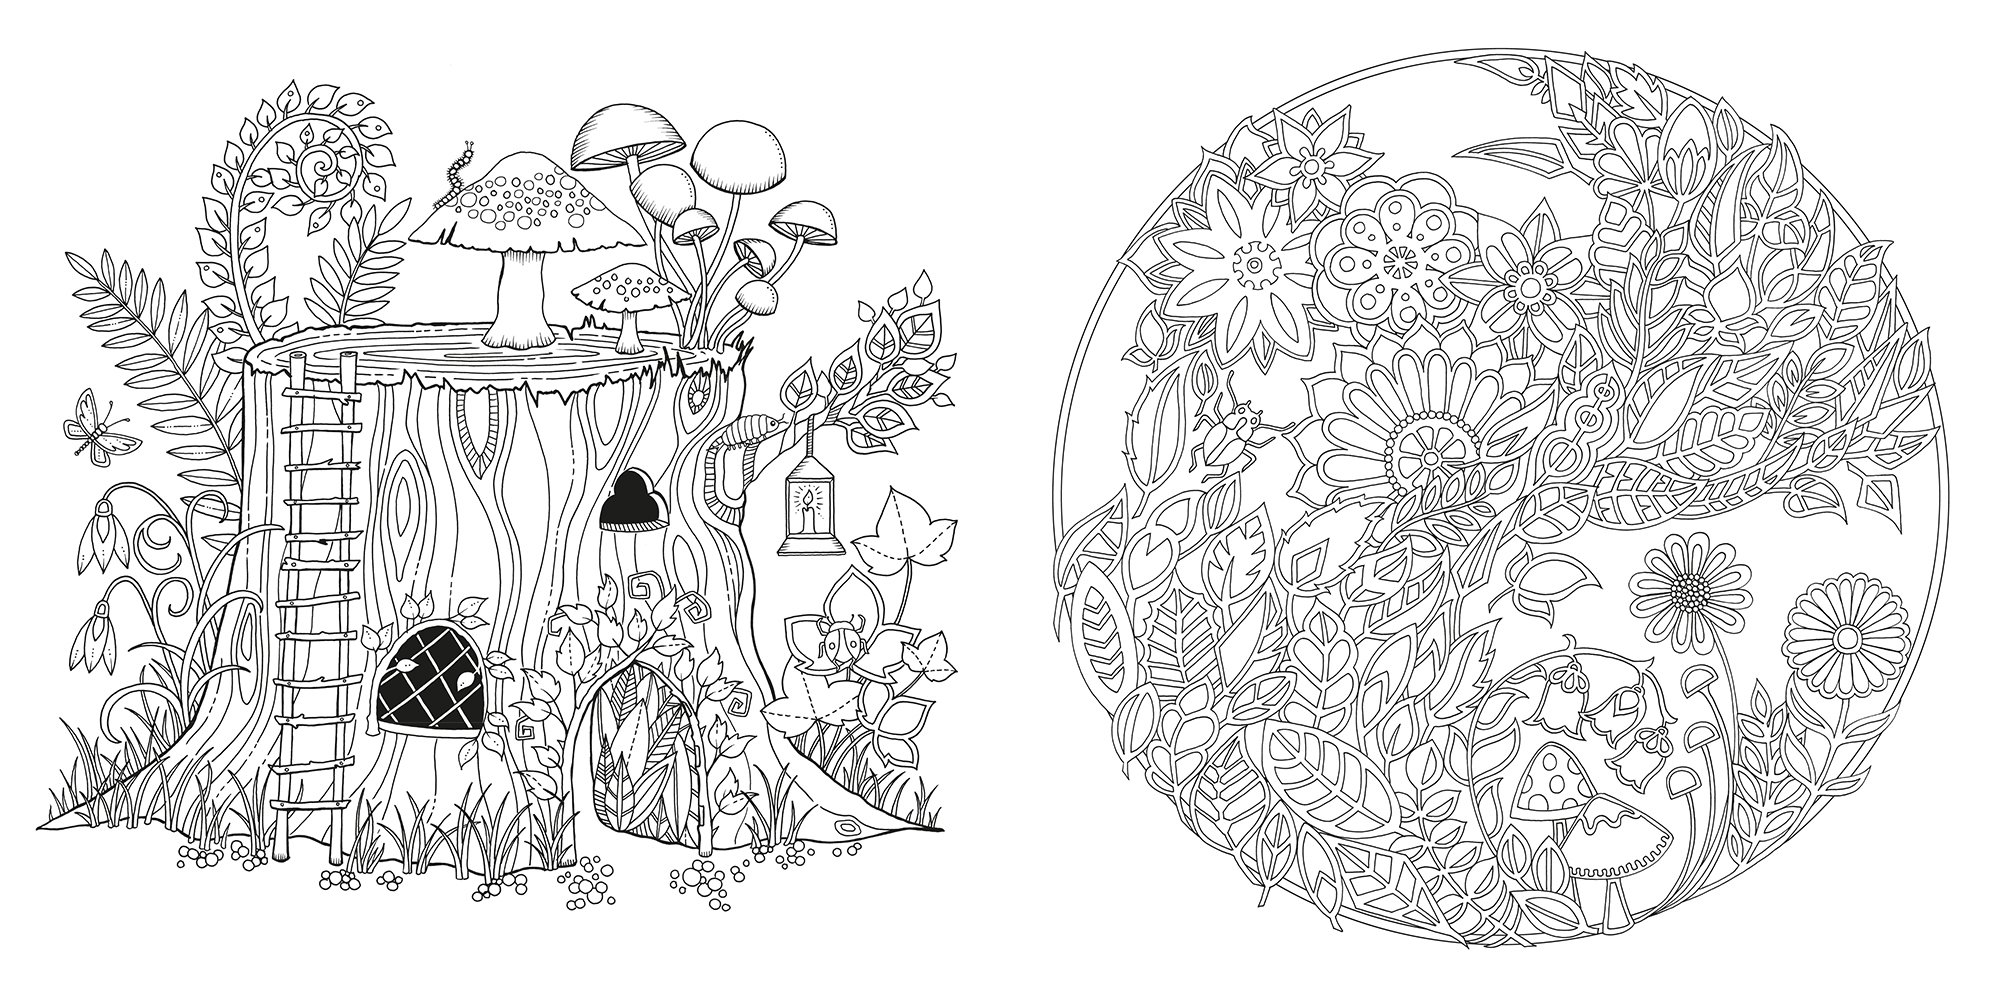 The Secret Garden Coloring Book Coloring Pages Card From User